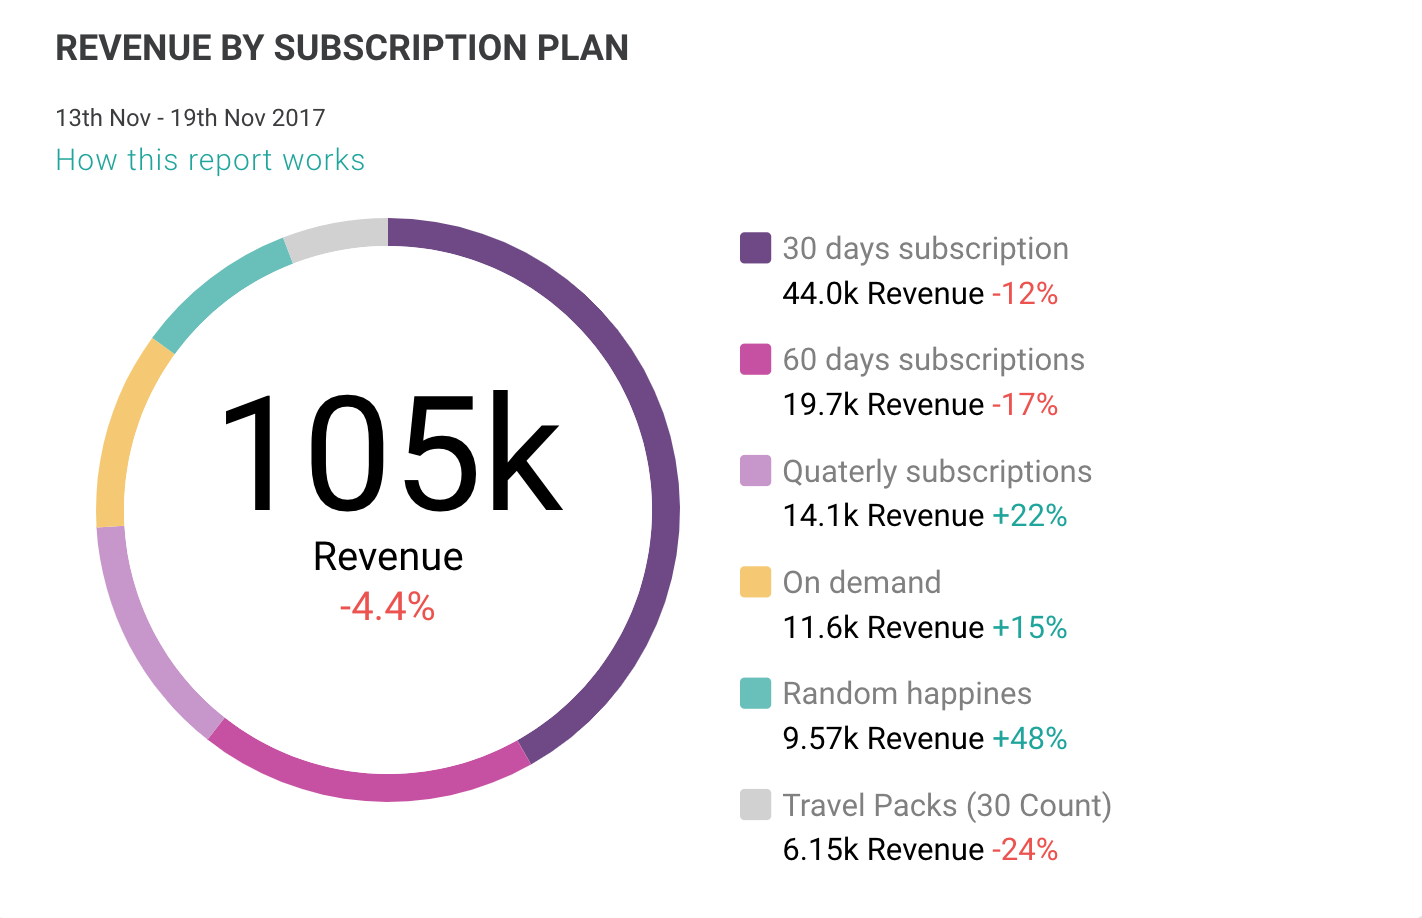 Revenue by subscription plan